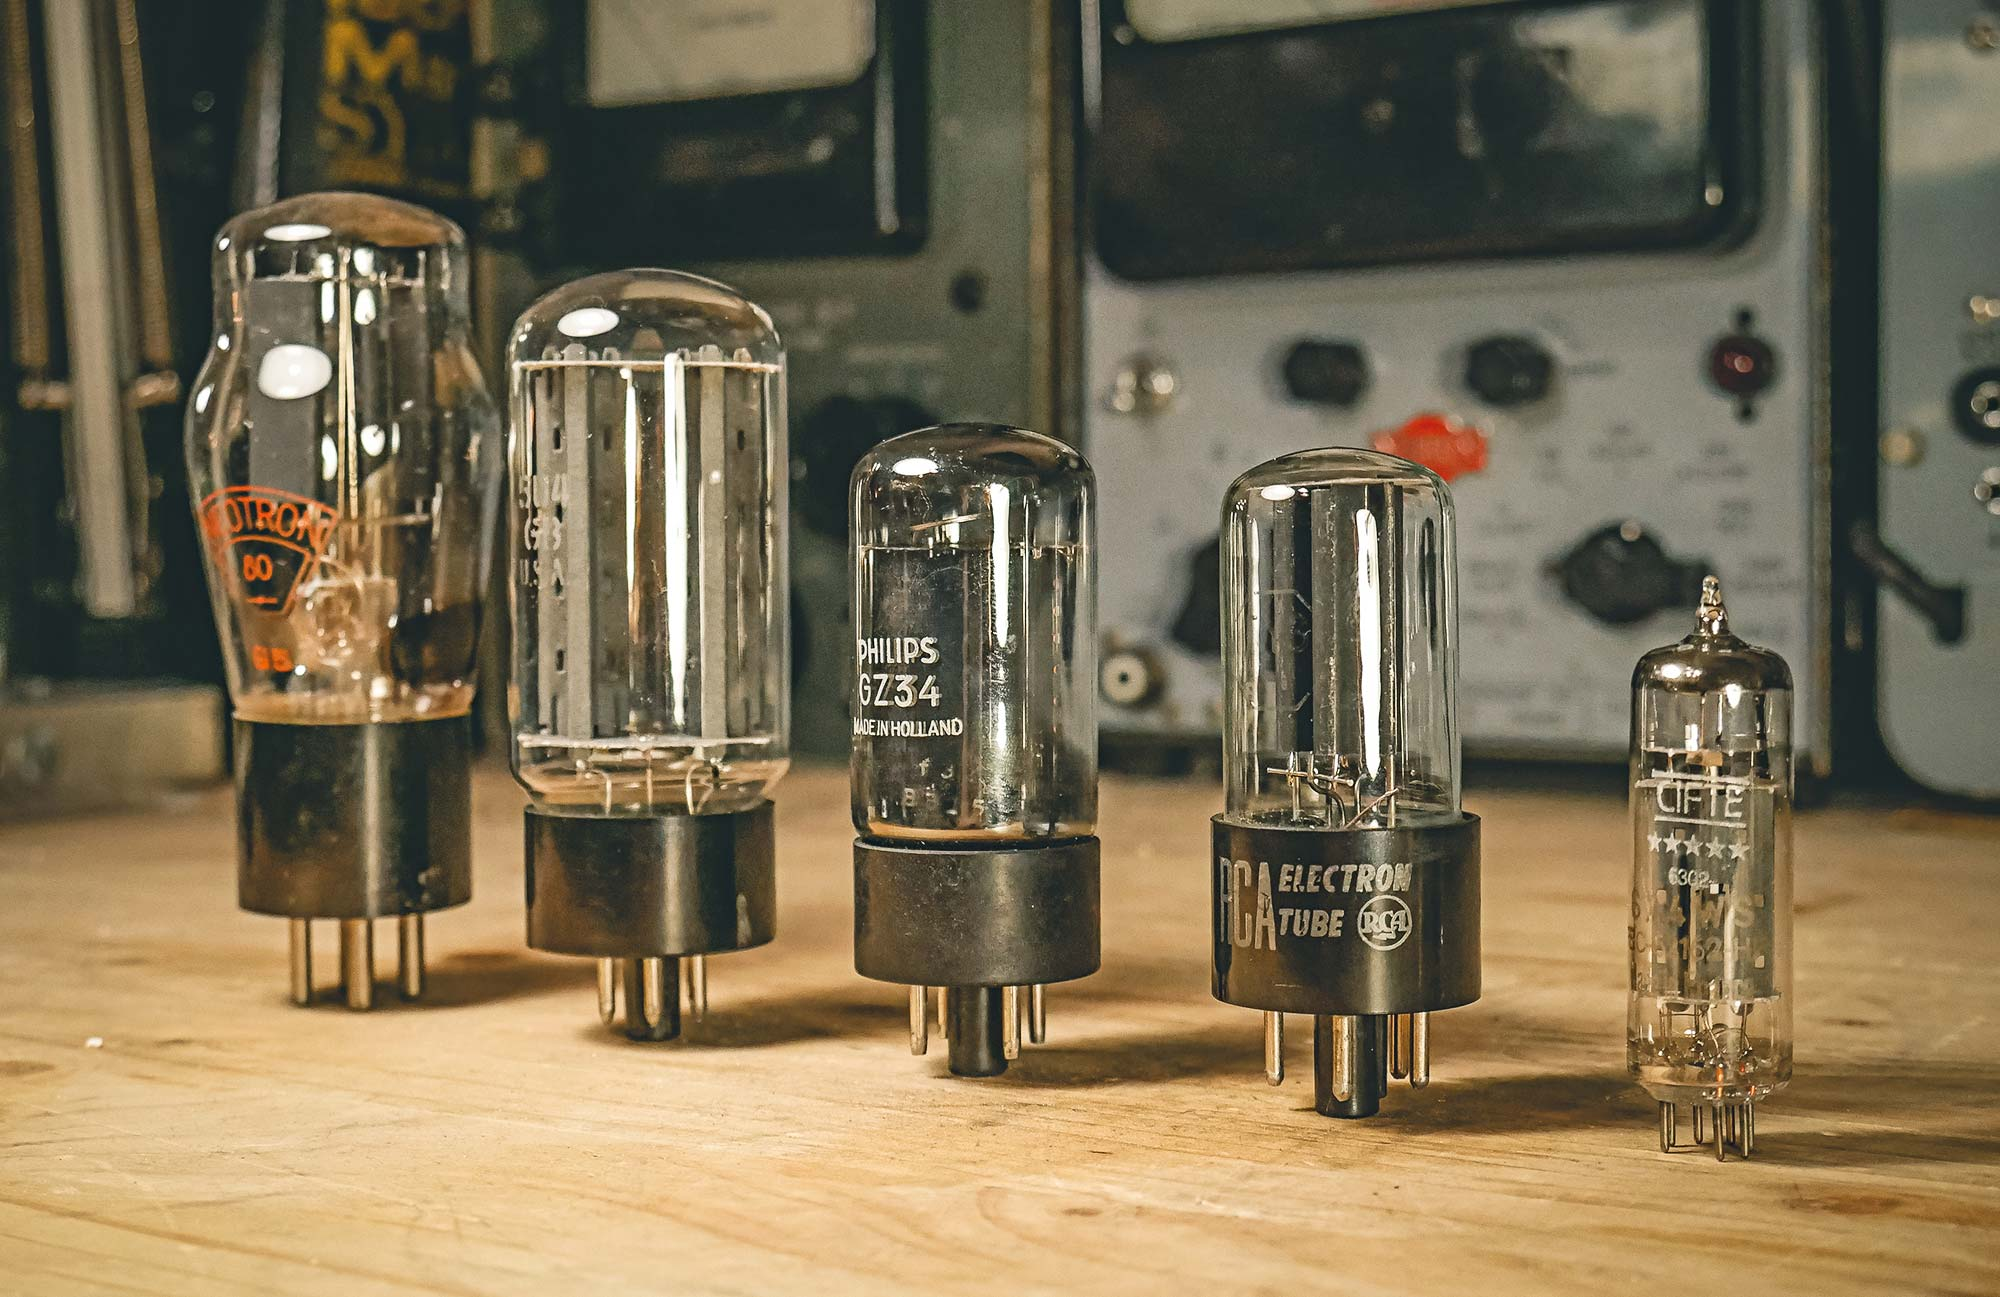 Does A Tube Rectifier Really Make An Amp Sound Better Reverb News The Circuit Is Simple One 5y3 One12ax7 For 5r4 This Large Bottled Not To Be Confused With 5ar4 Which Follows Rarely Used In Modern Designs But Offers Mid Level Sag Many